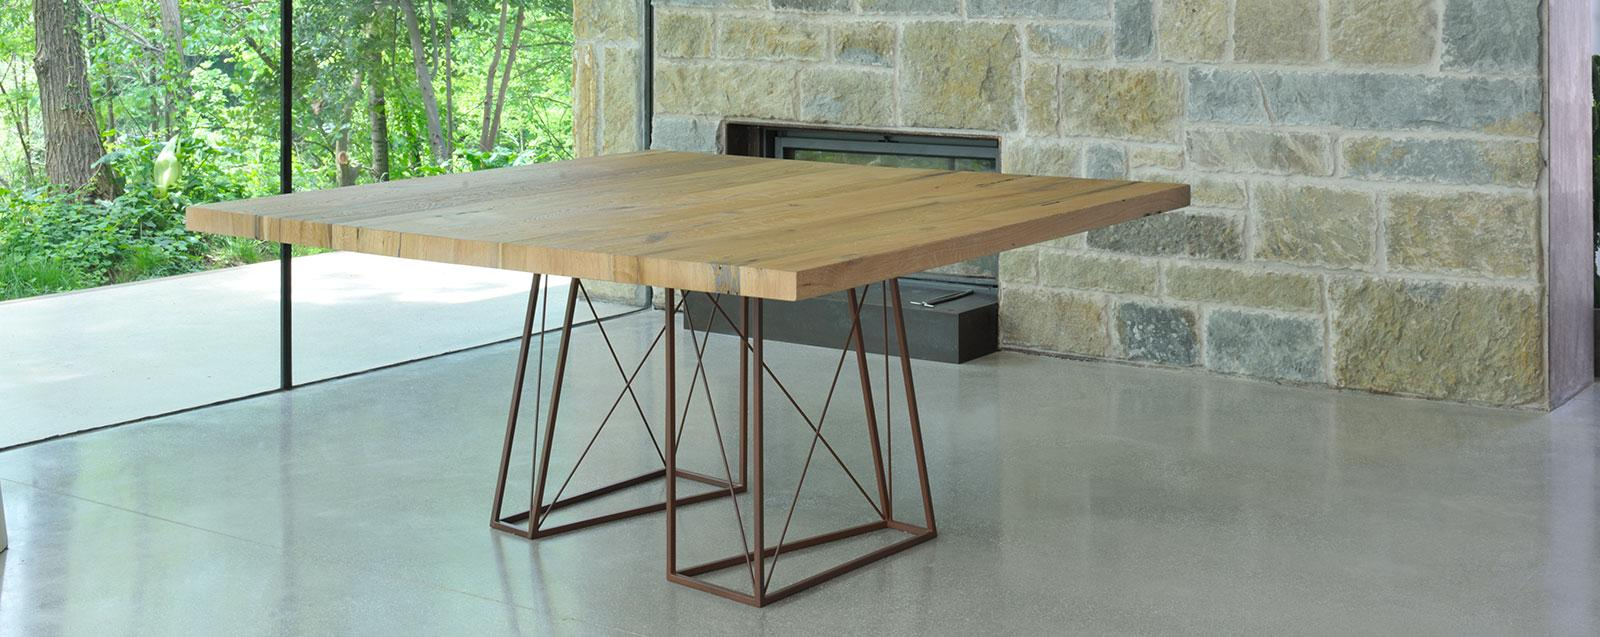 Table rectangulaire en bois vente en ligne italy dream for Table carree salle a manger